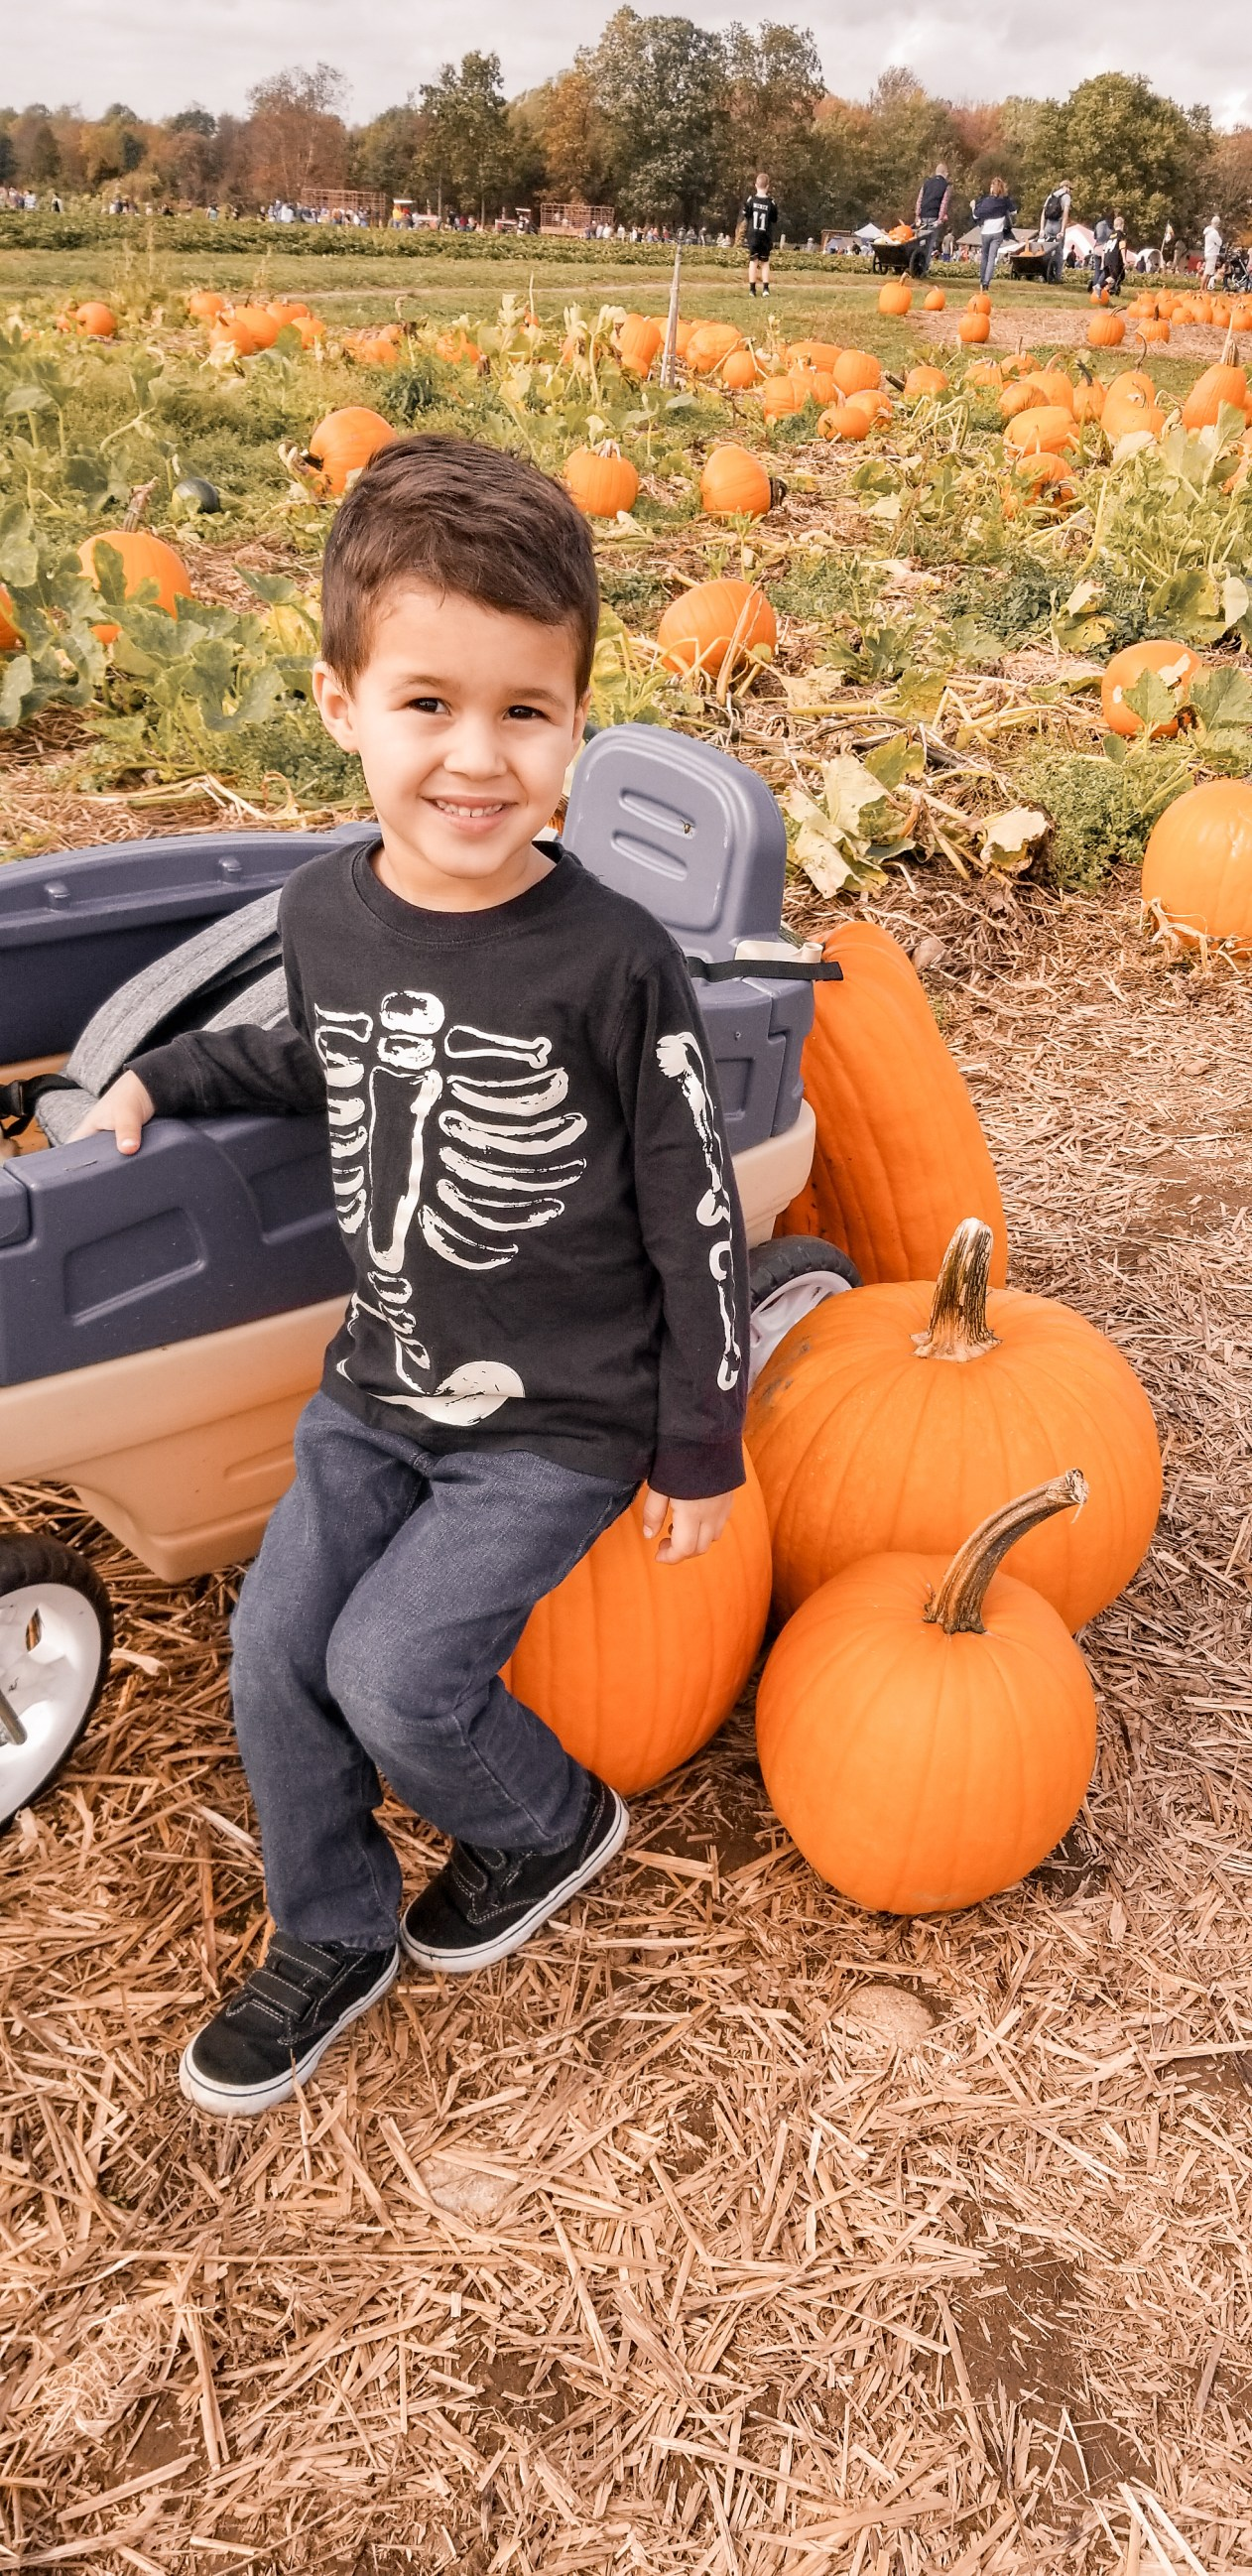 Mama of Both Worlds: Fall Activities for Your Family